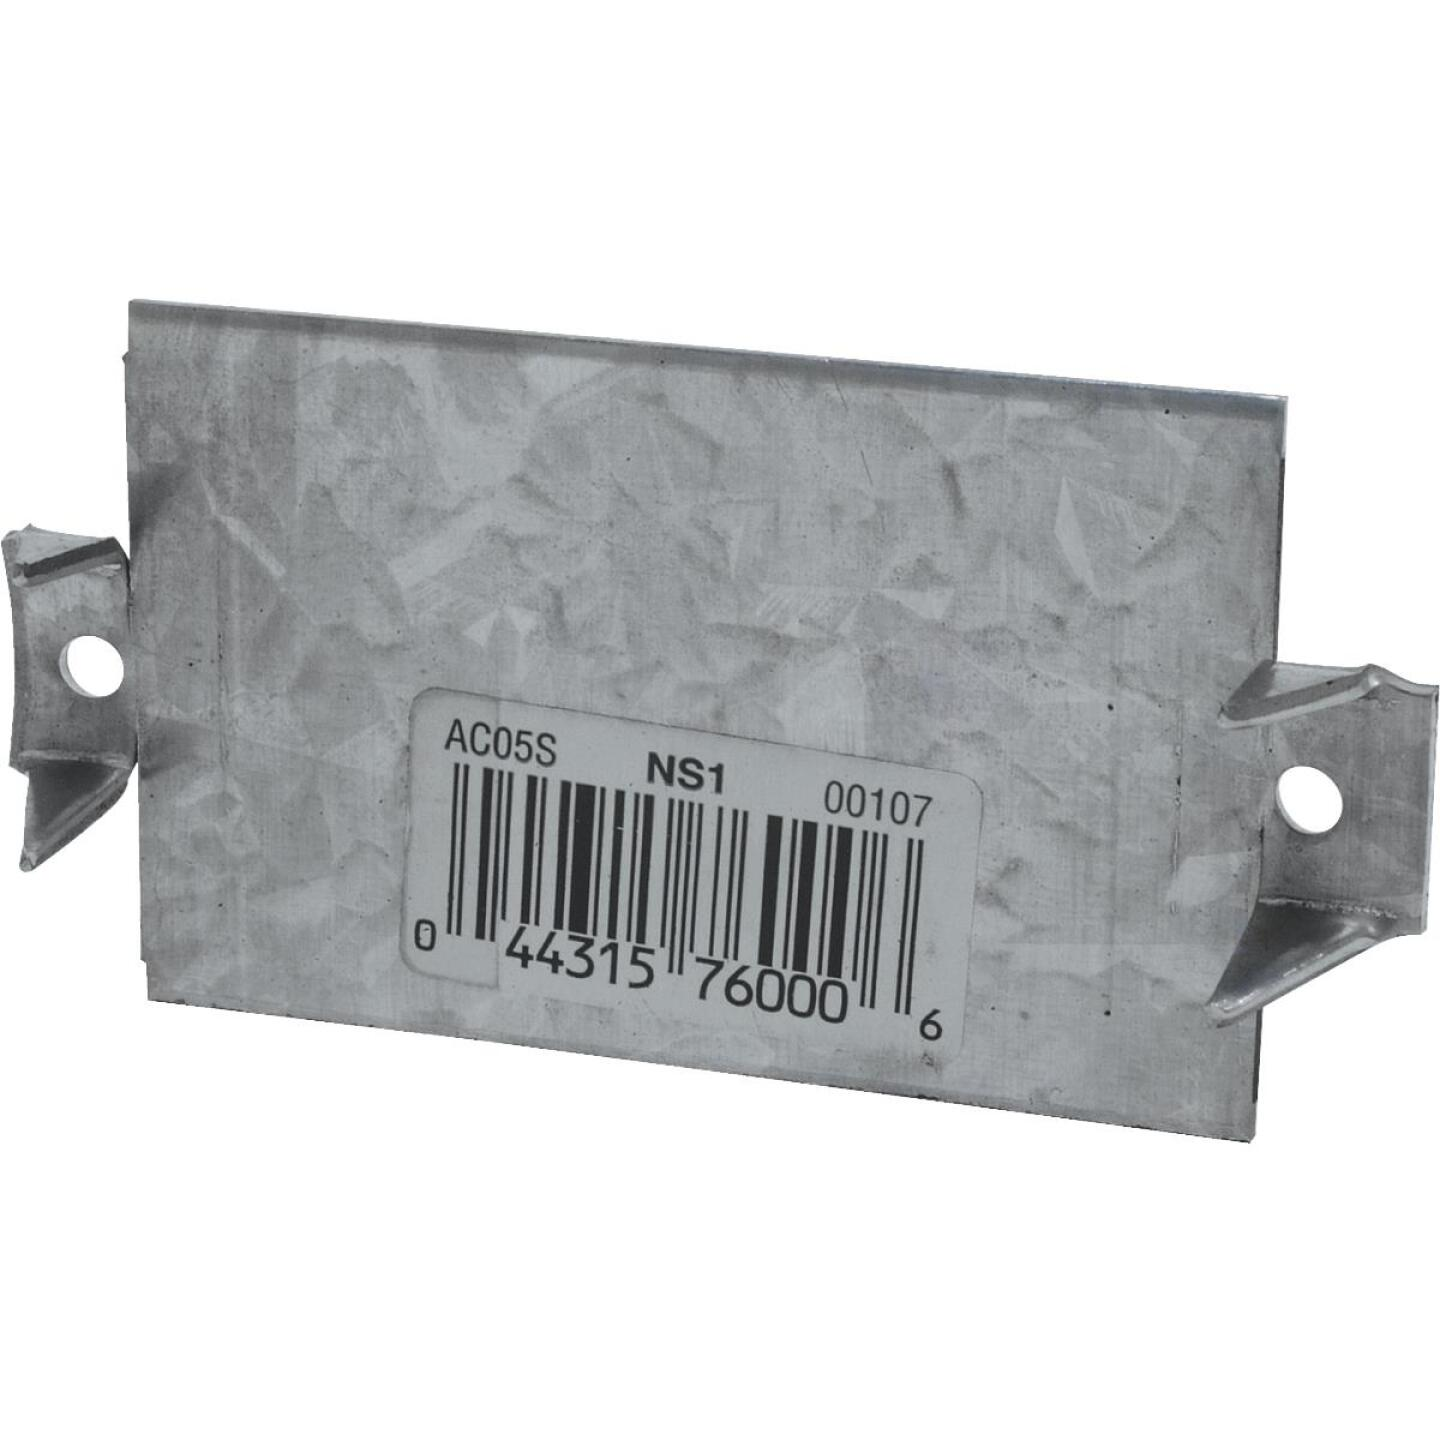 Simpson Strong-Tie 1-1/2 in. W x 3 in. L Galvanized Steel 16 Gauge Protection Plate Image 1